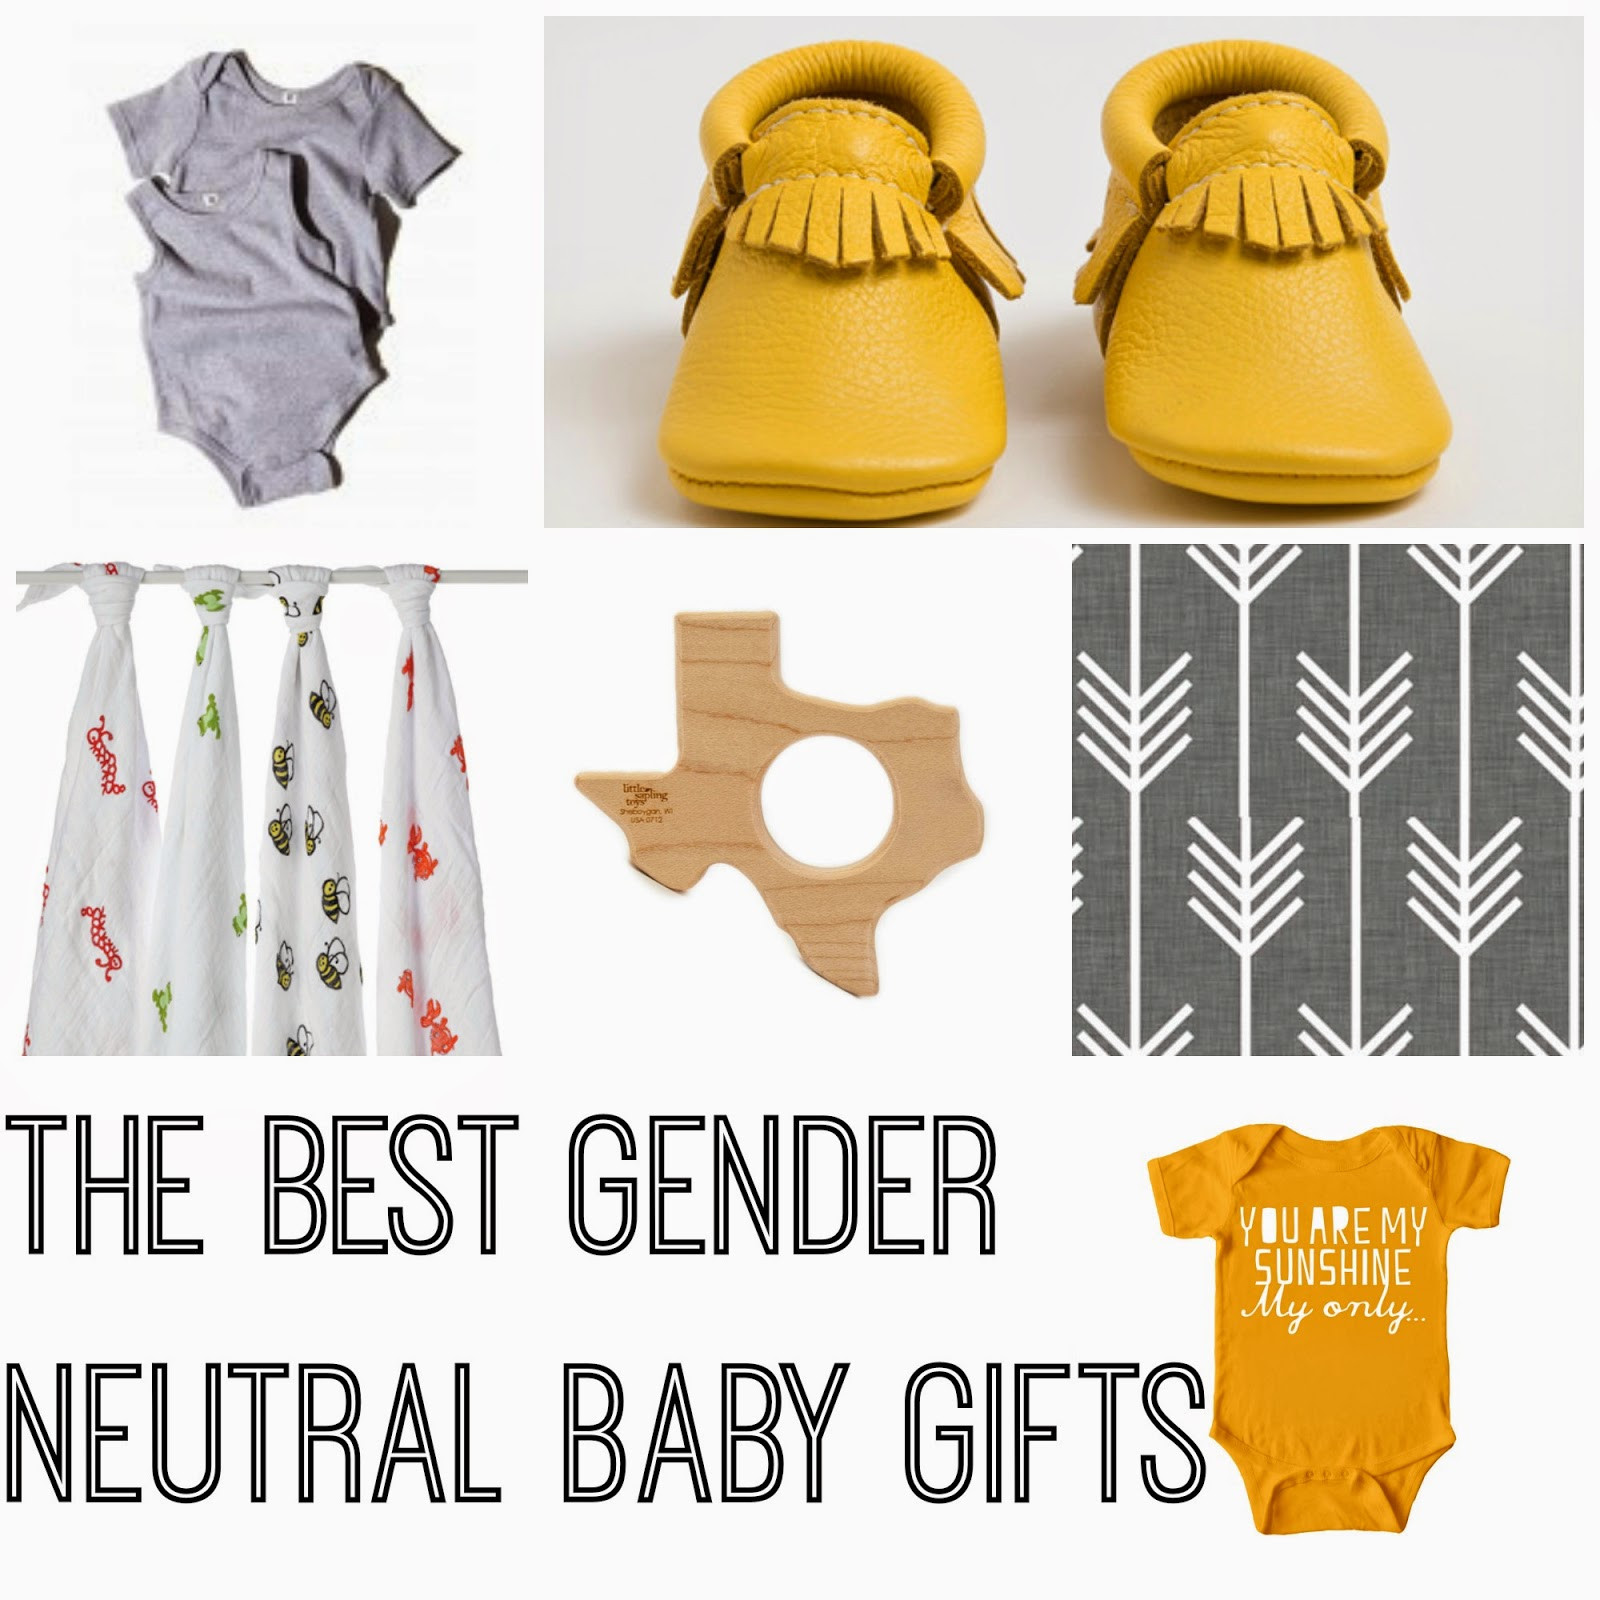 Best ideas about Gender Neutral Baby Gift Ideas . Save or Pin The Chirping Moms The Best Gender Neutral Baby Gifts Now.